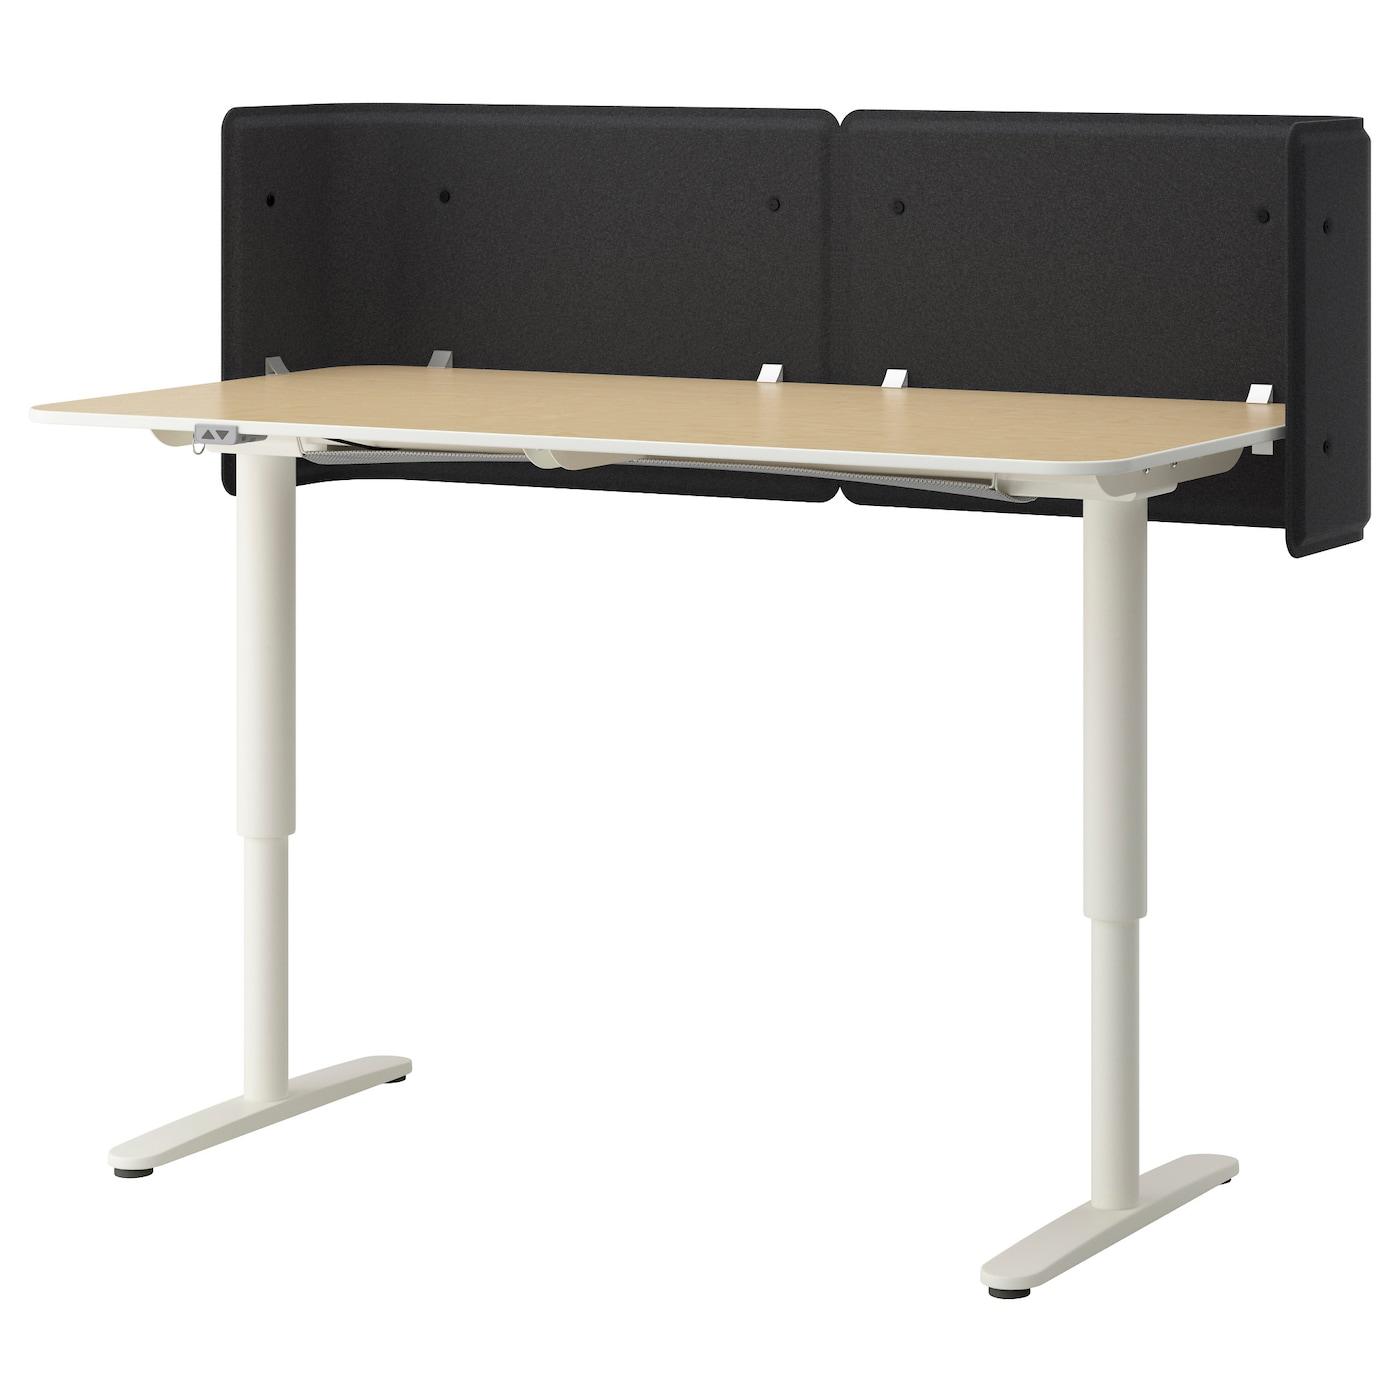 Ikea Bekant Reception Desk Sit Stand Holds Pins Also Serves As Notice Board